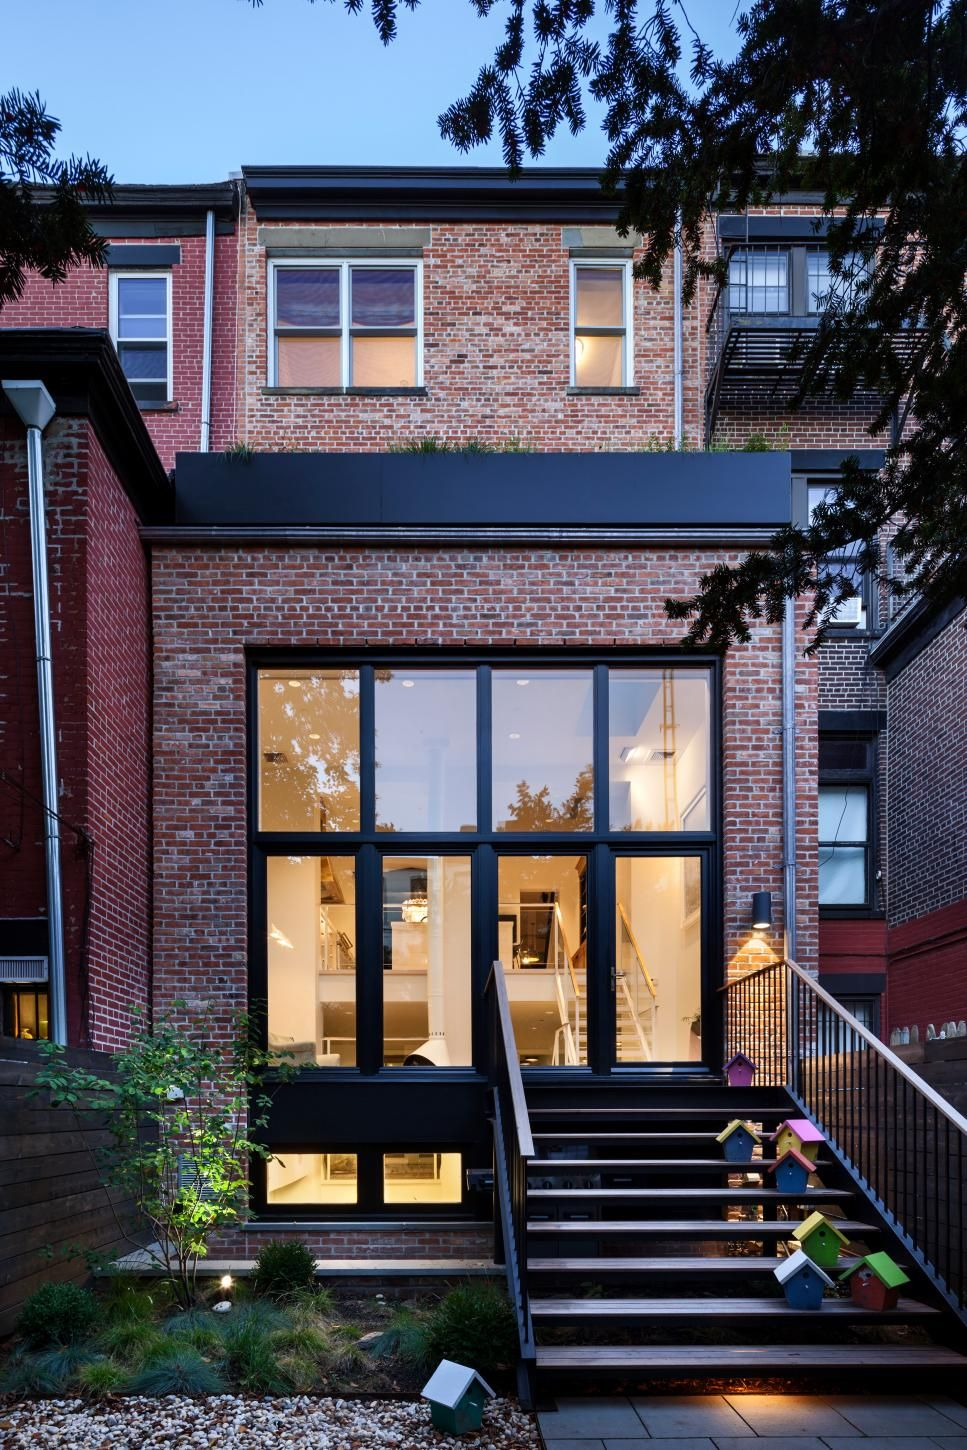 Located In Brooklyn NY This Beautiful Townhouse By Tamara Eaton Design Features A Brick